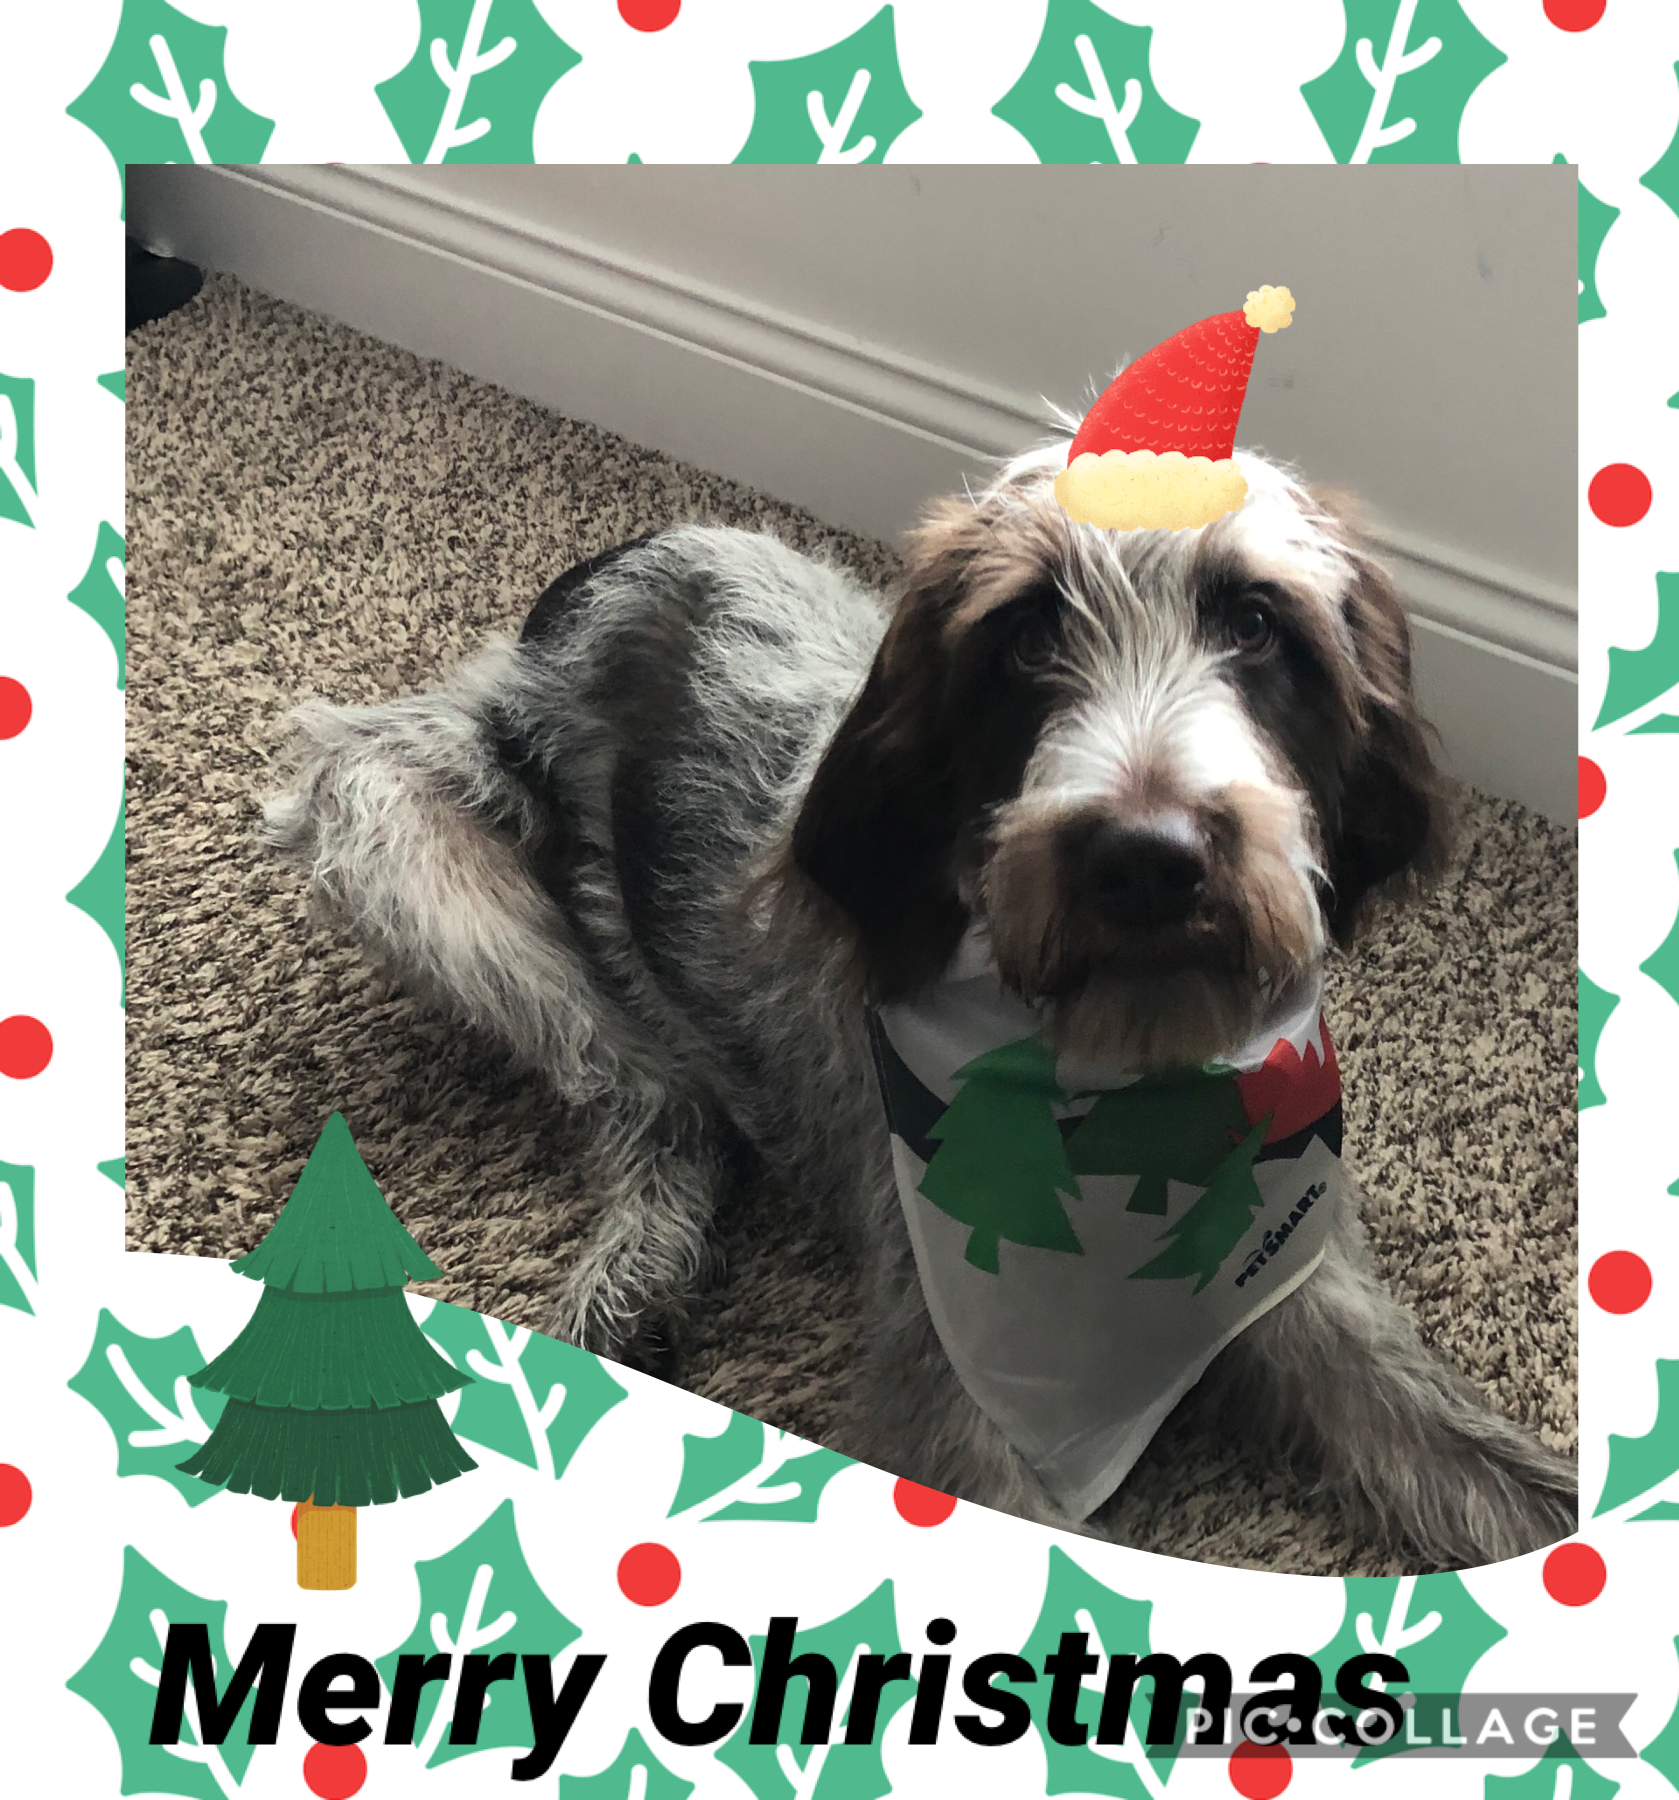 Xmas 2019 With Images Merry